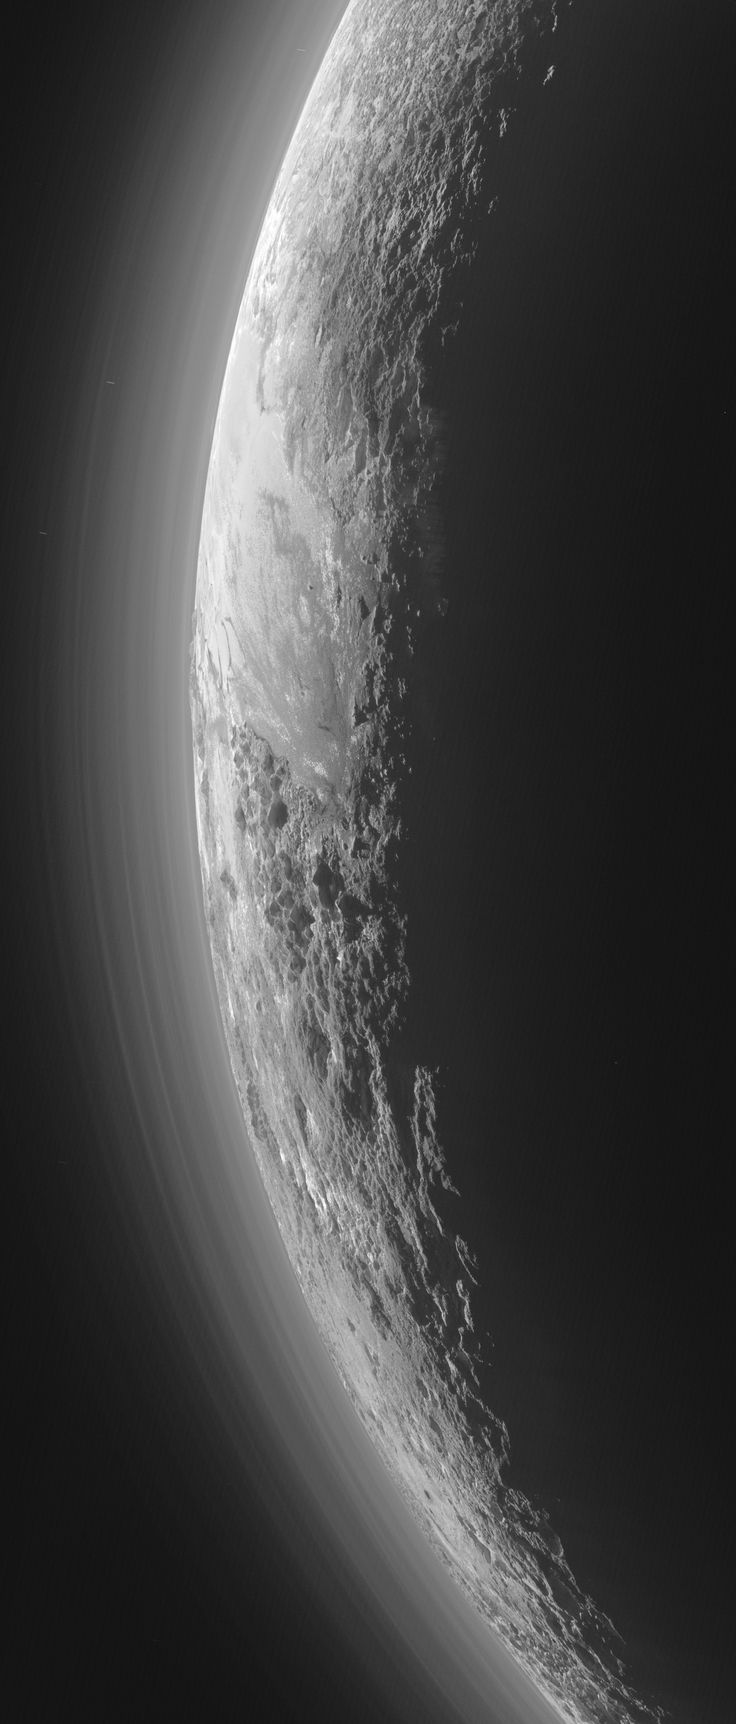 Only 15 minutes after its closest approach to Pluto on July 14, 2015, NASA's New Horizons spacecraft looked back toward the sun and captured this near-sunset view of the rugged, icy mountains and flat ice plains extending to Pluto's horizon. The smooth expanse of the informally named icy plain Sputnik Planum (right) is flanked on the left by rugged mountains up to 11,000 feet (3,500 meters) high, including the informally named Norgay Montes in the foreground and Hillary Montes on the…